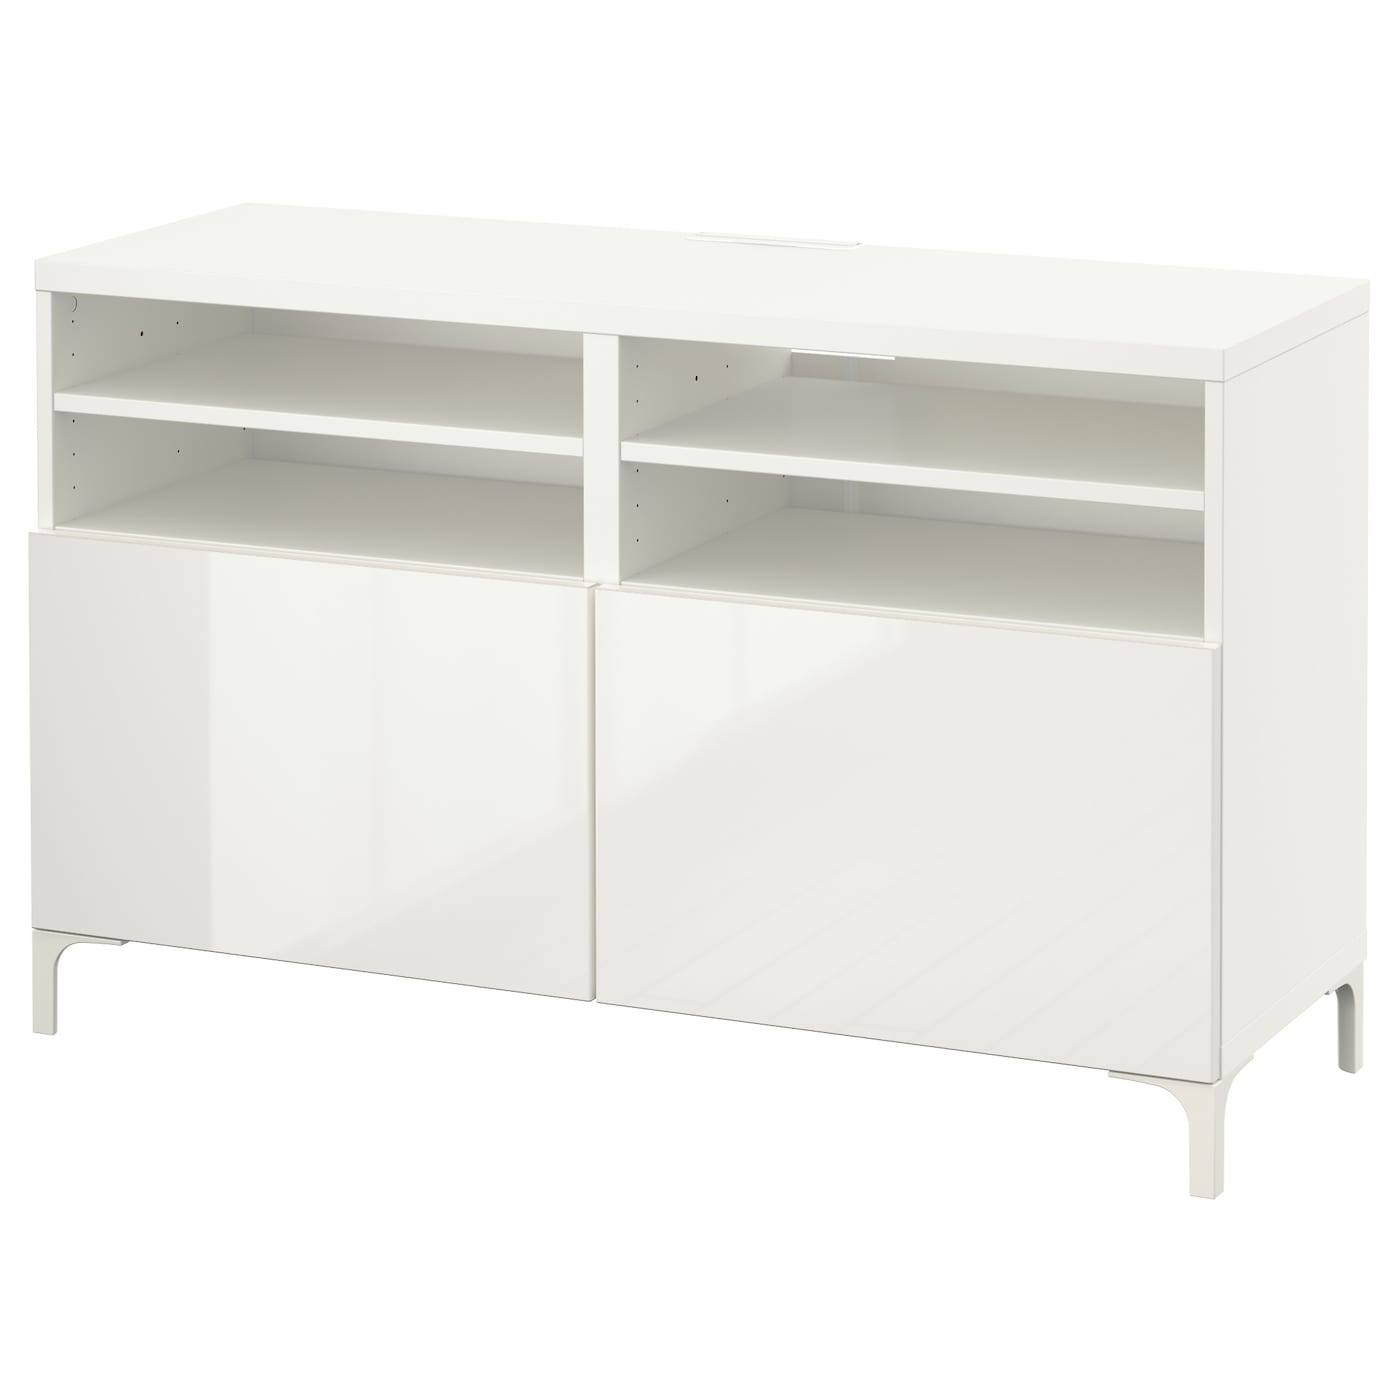 best banc tv avec portes blanc selsviken brillant blanc 120x40x74 cm ikea. Black Bedroom Furniture Sets. Home Design Ideas